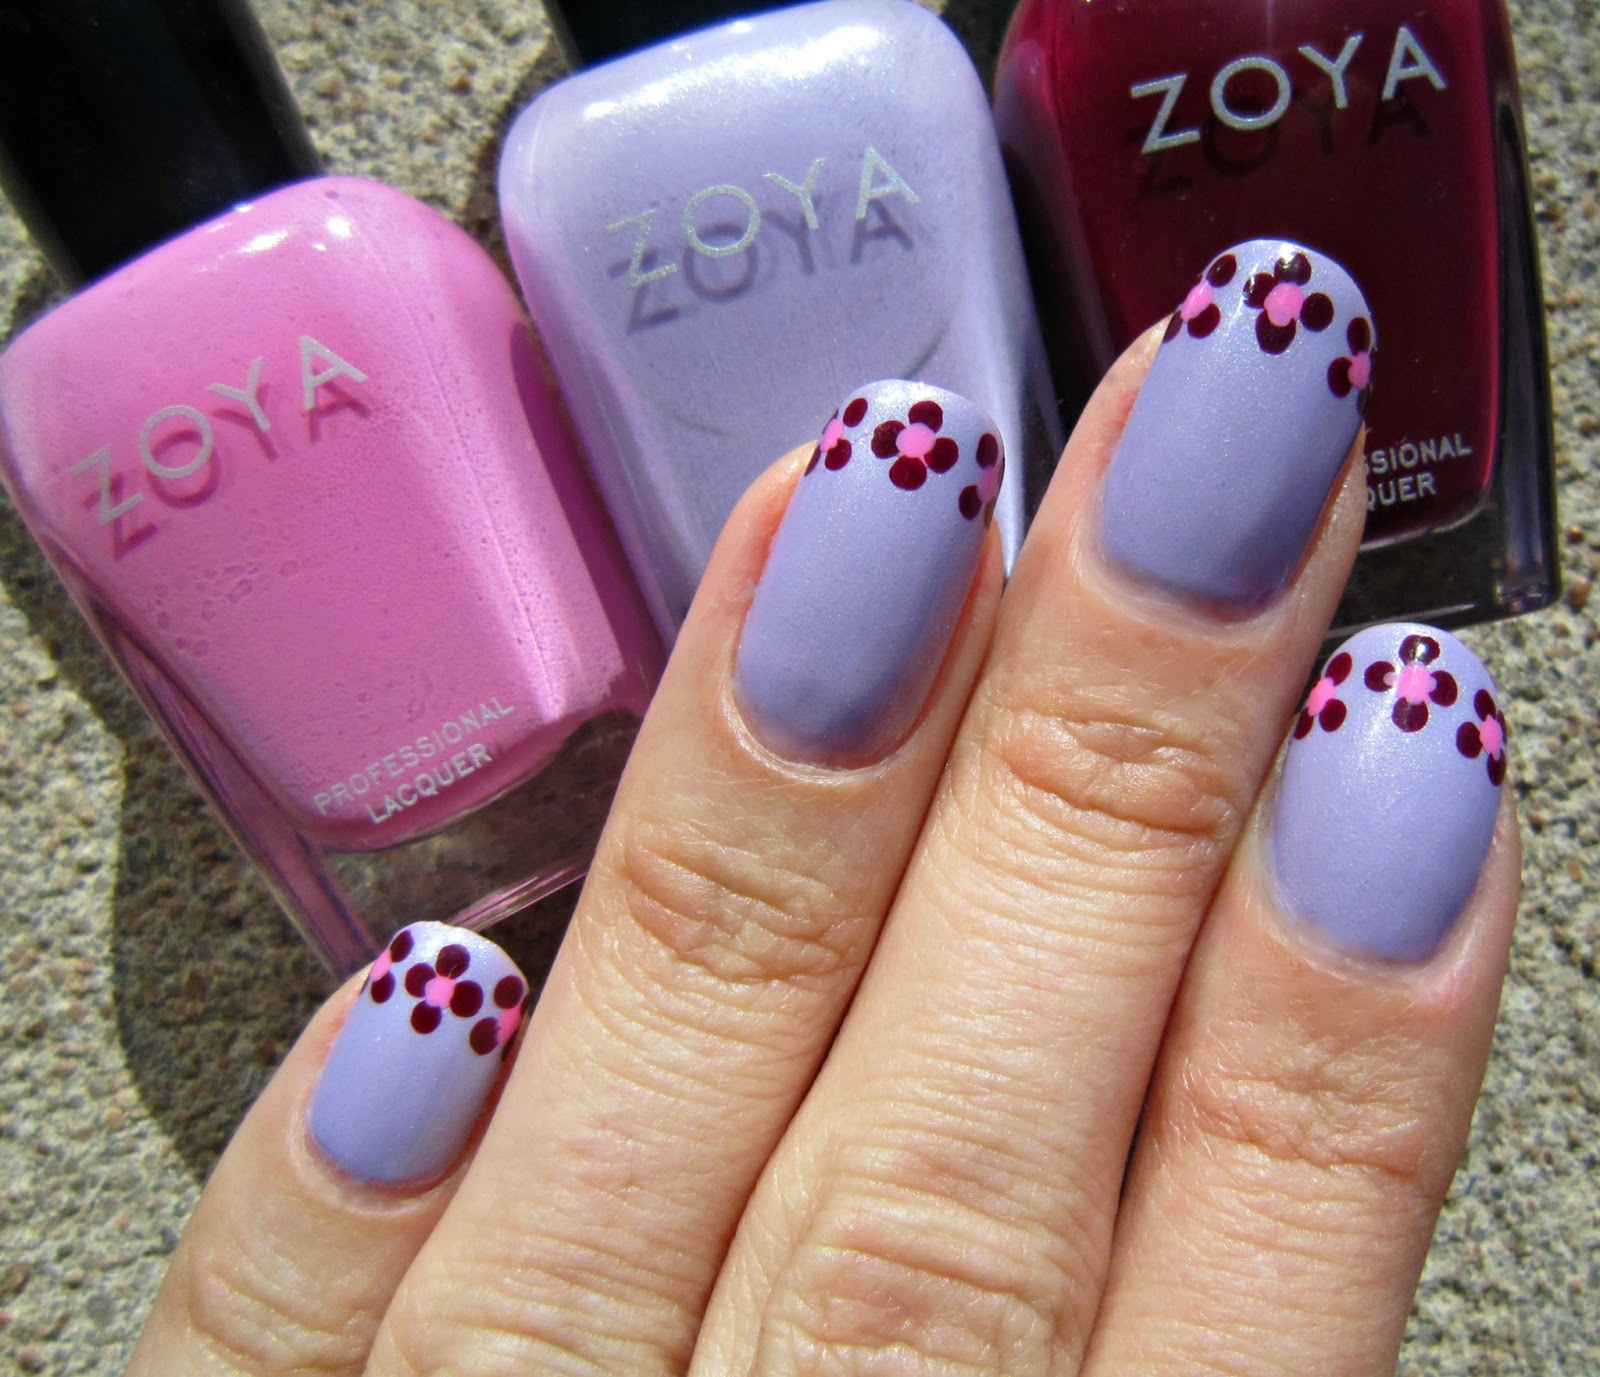 Concrete and nail polish zoya dotted flower french zoya dotted flower french mightylinksfo